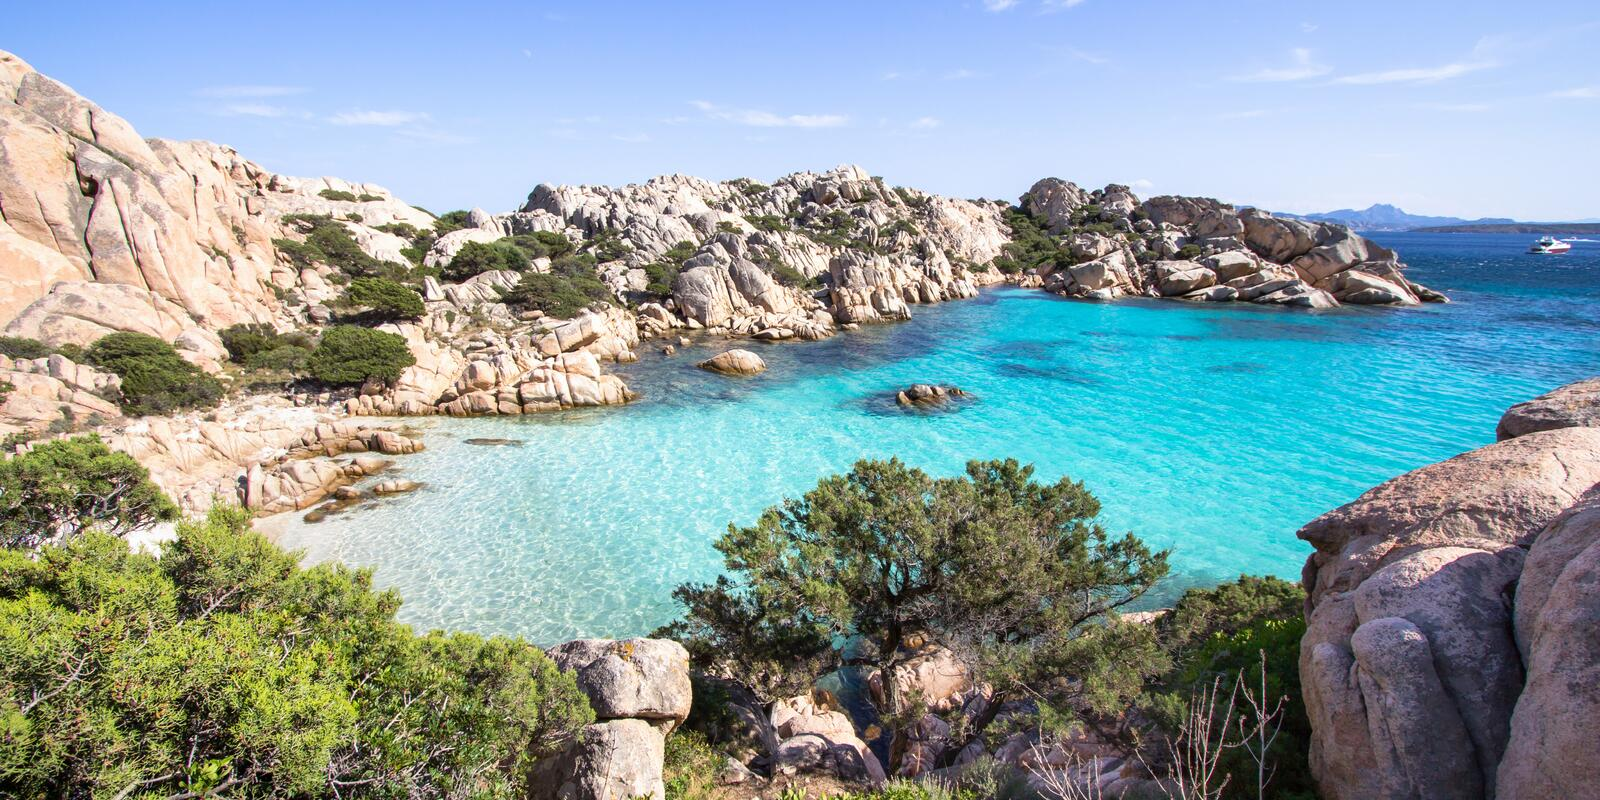 Maddalena Archipelago and Southern Corsica ... between granite and emerald sea!